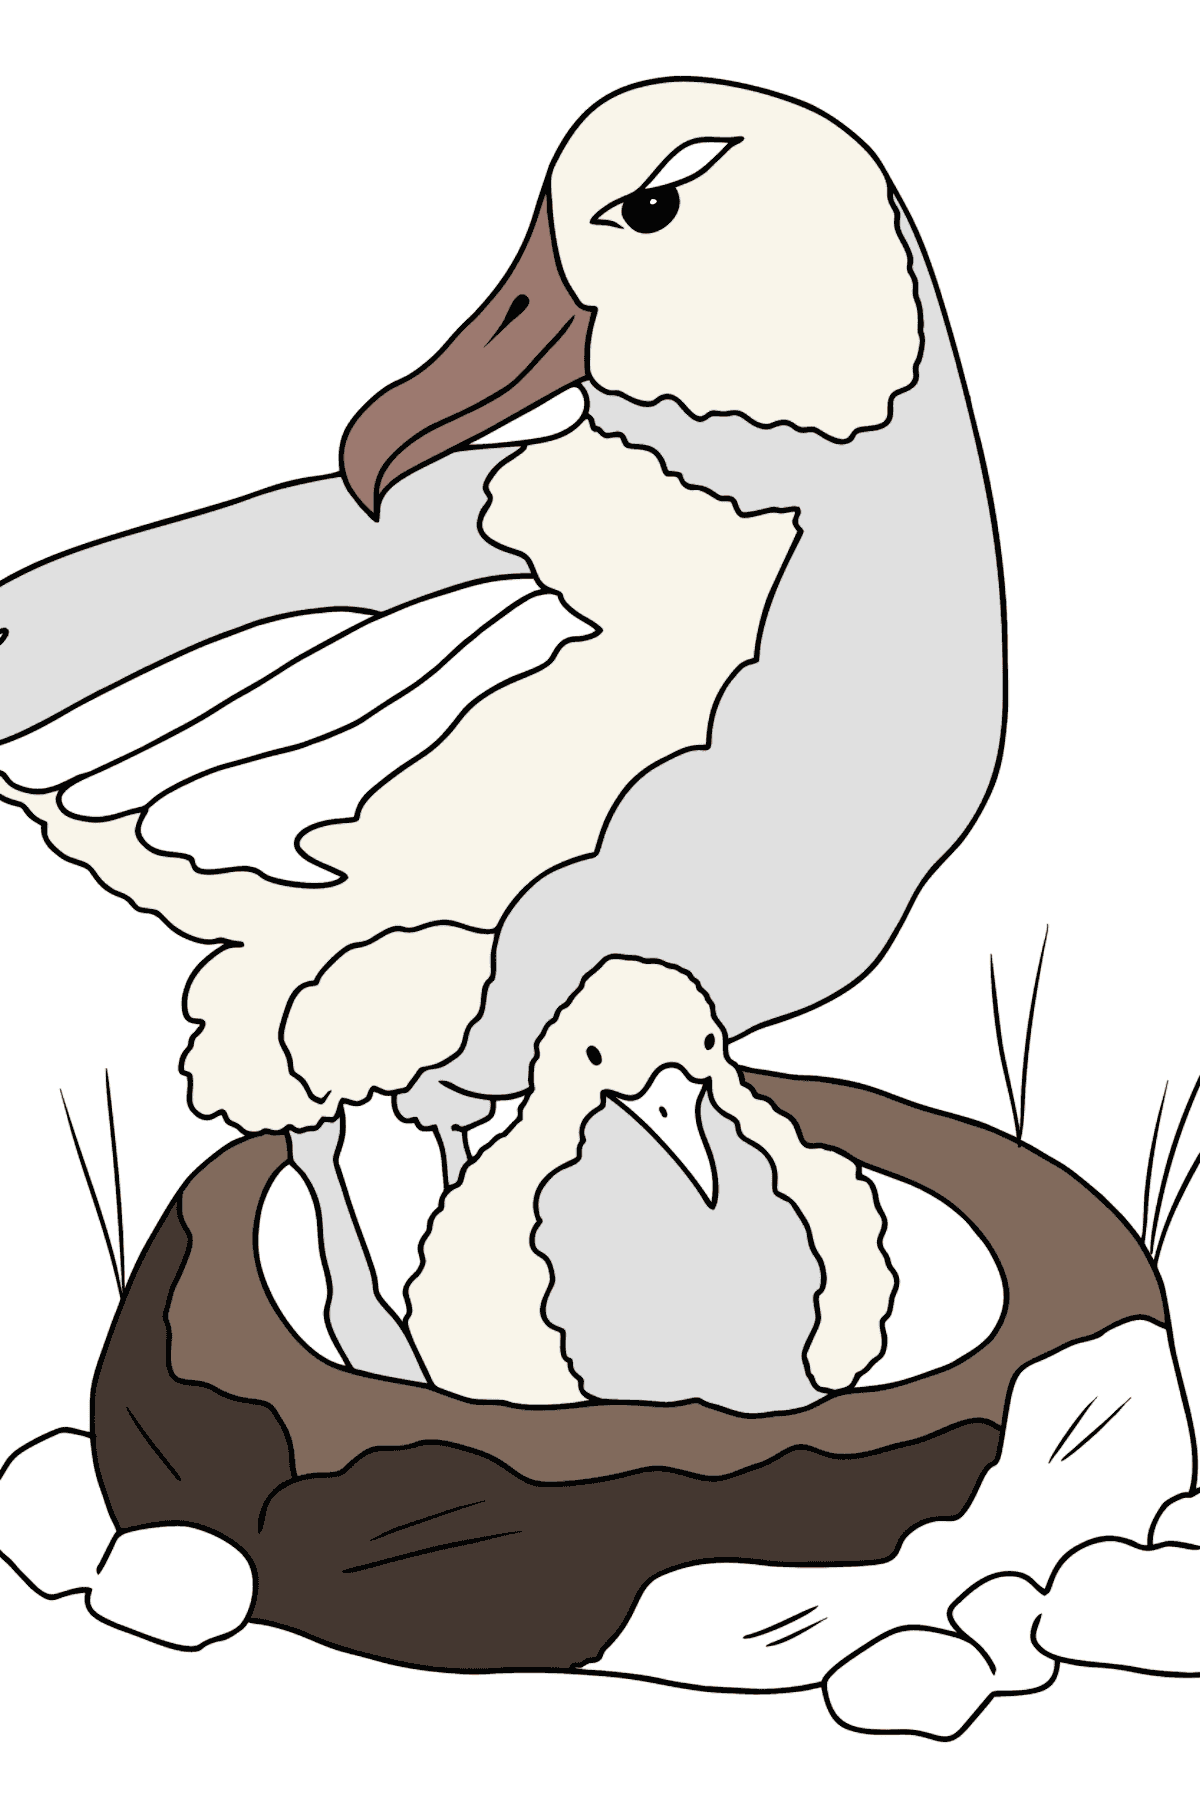 Coloring Page - An Albatross is Taking Care of a Nestling - Coloring Pages for Kids